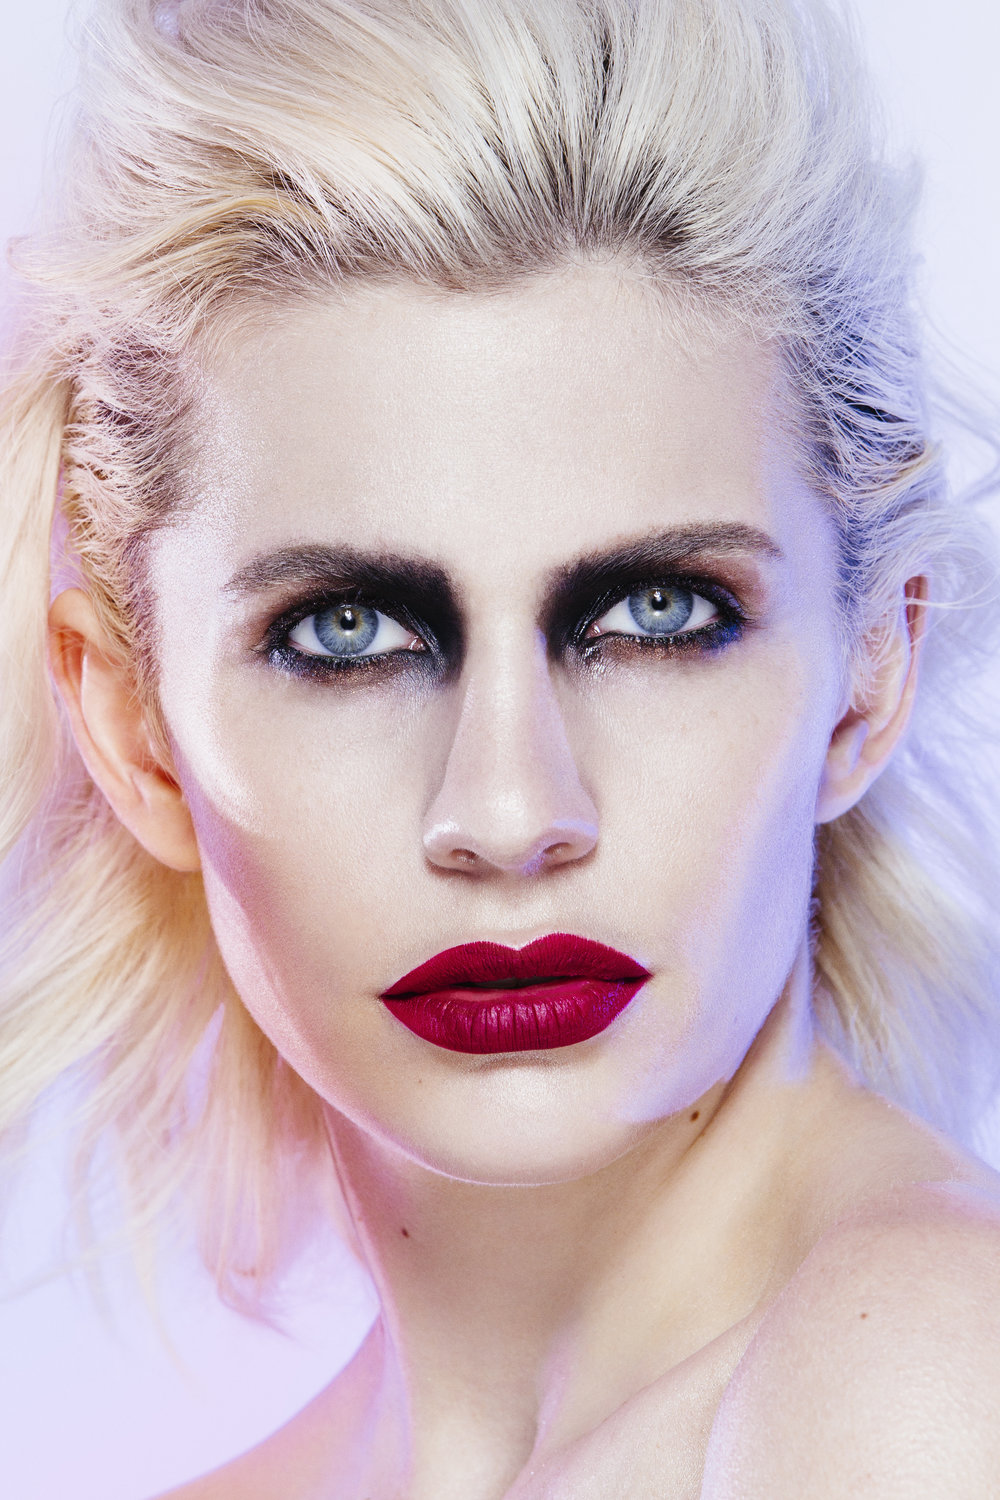 beauty_and_fashion_photographer_gia_goodrich_beauty_editorial_anna_caroom_makeup_trends_fall_winter_black_eyeliner_look5_10.jpg